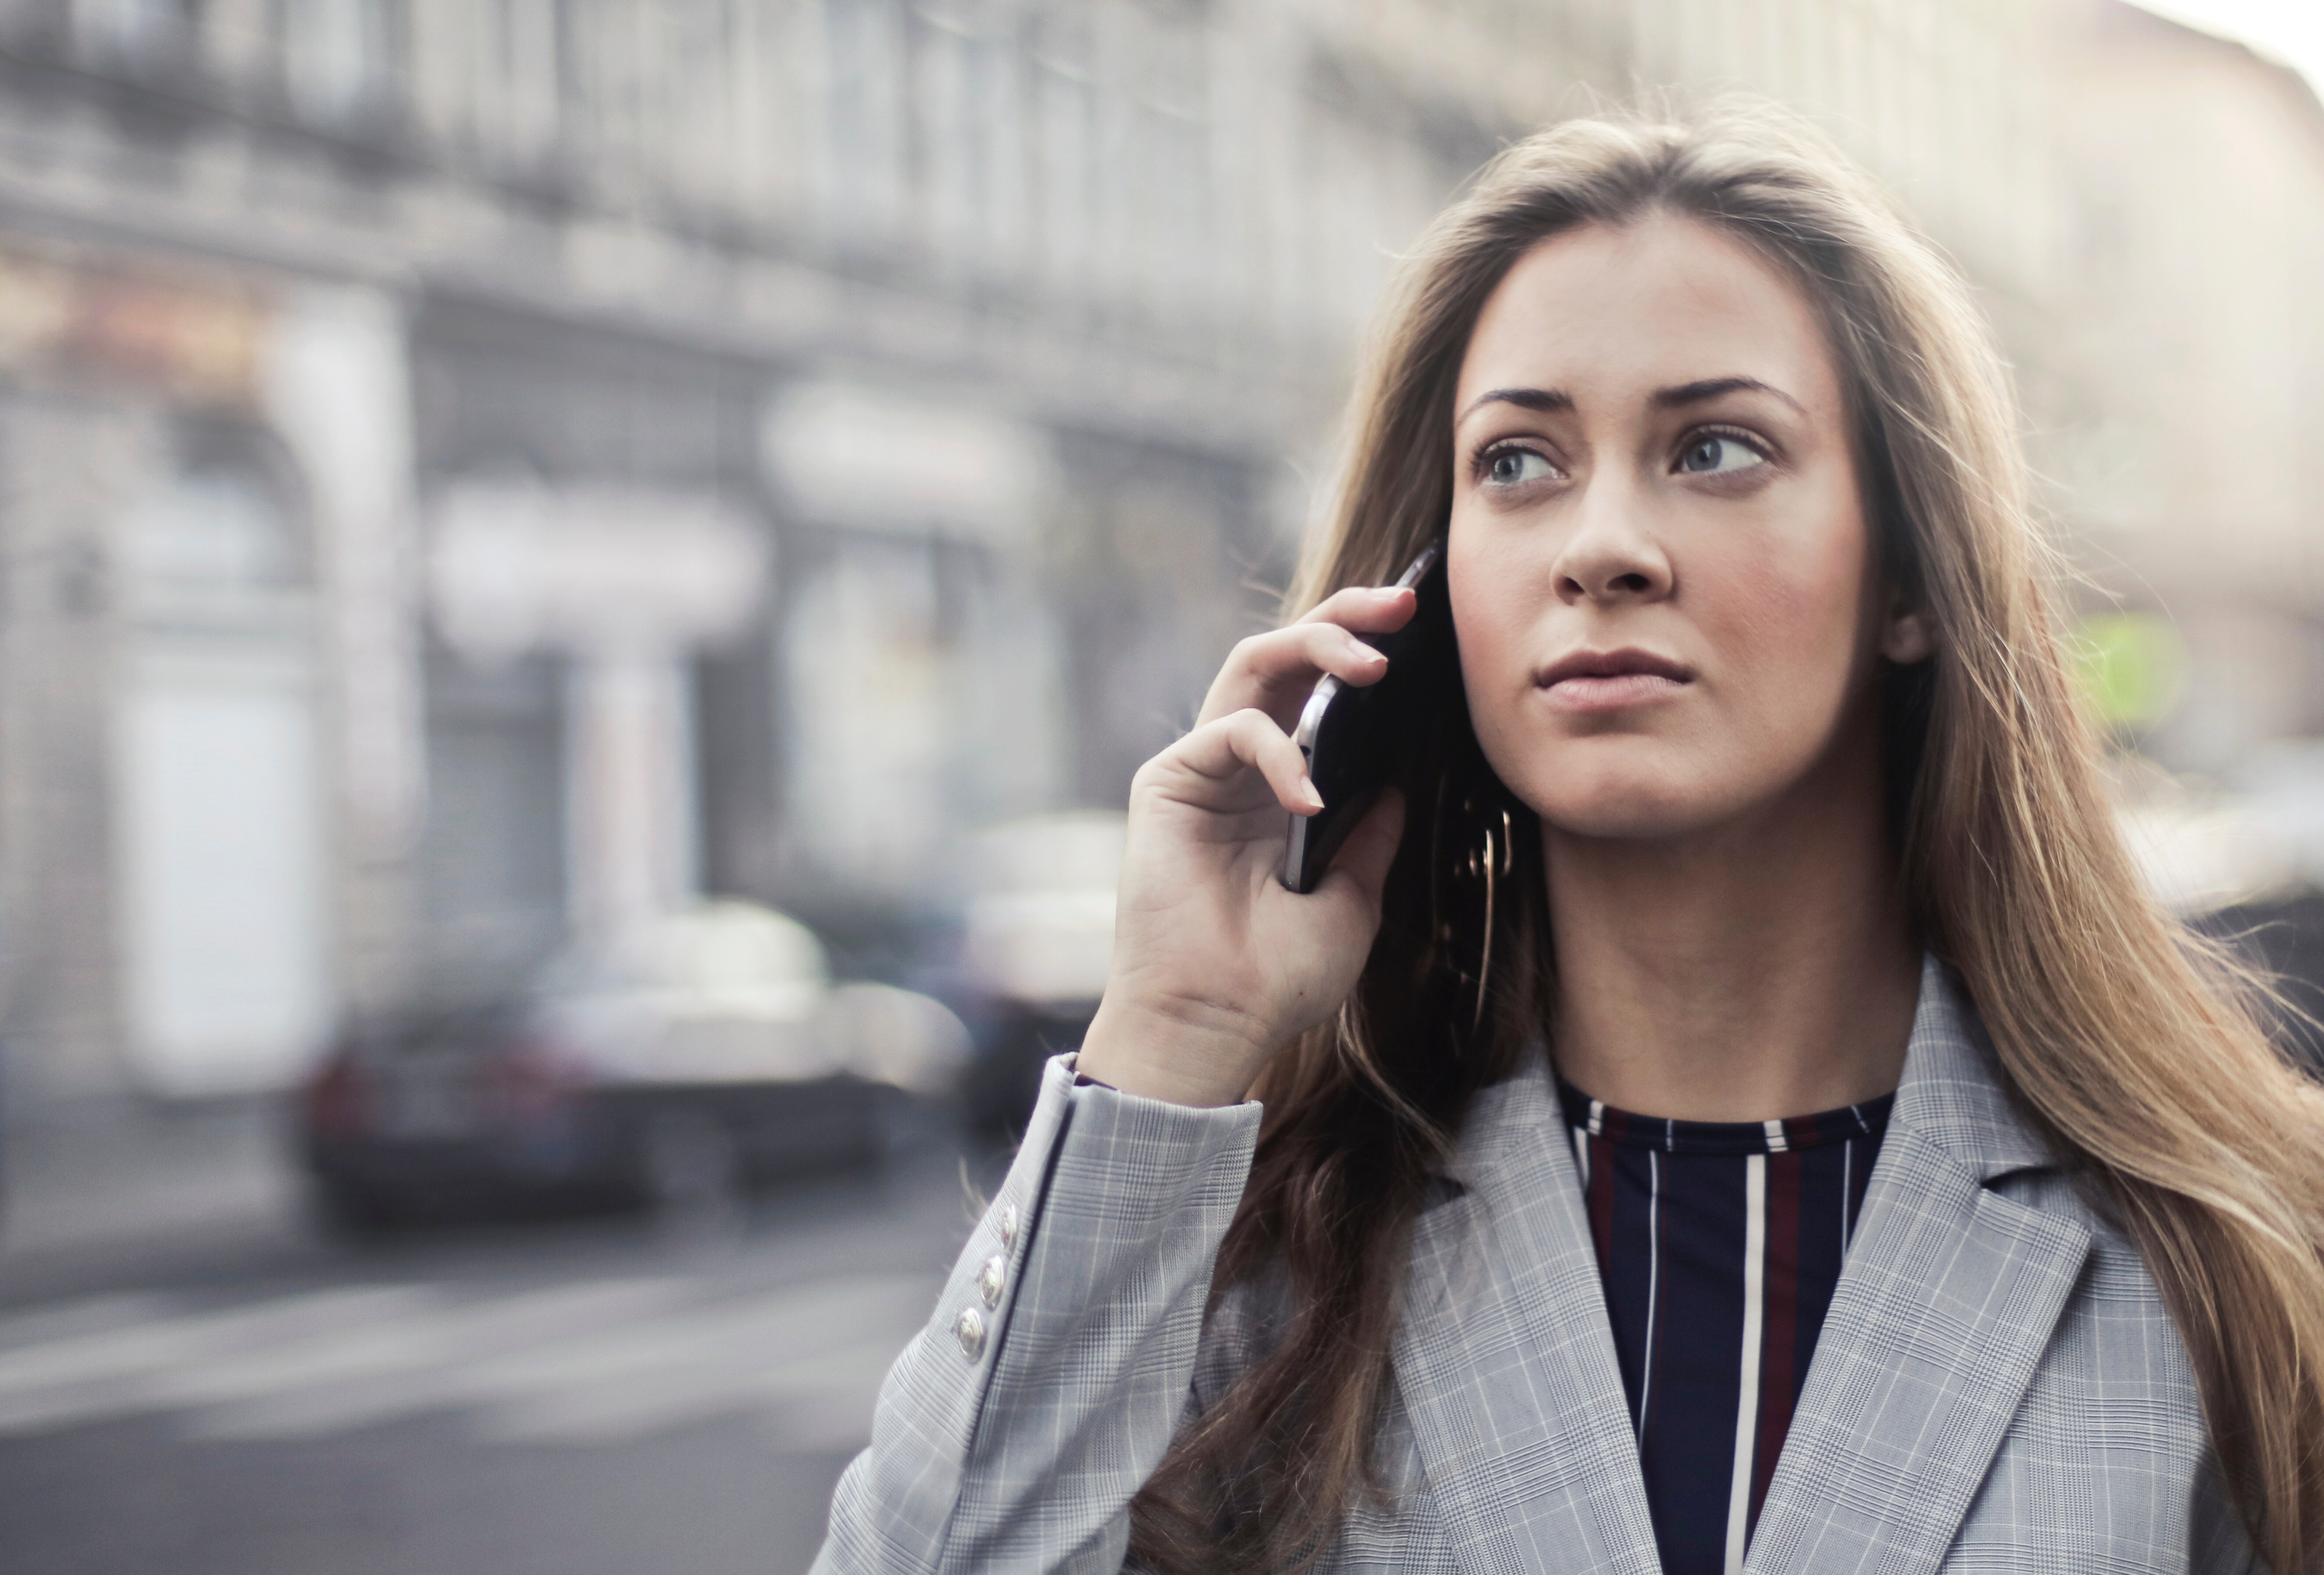 Woman in Grey Notched Lapel Suit, Mobile, Young, Woman, Urban, HQ Photo